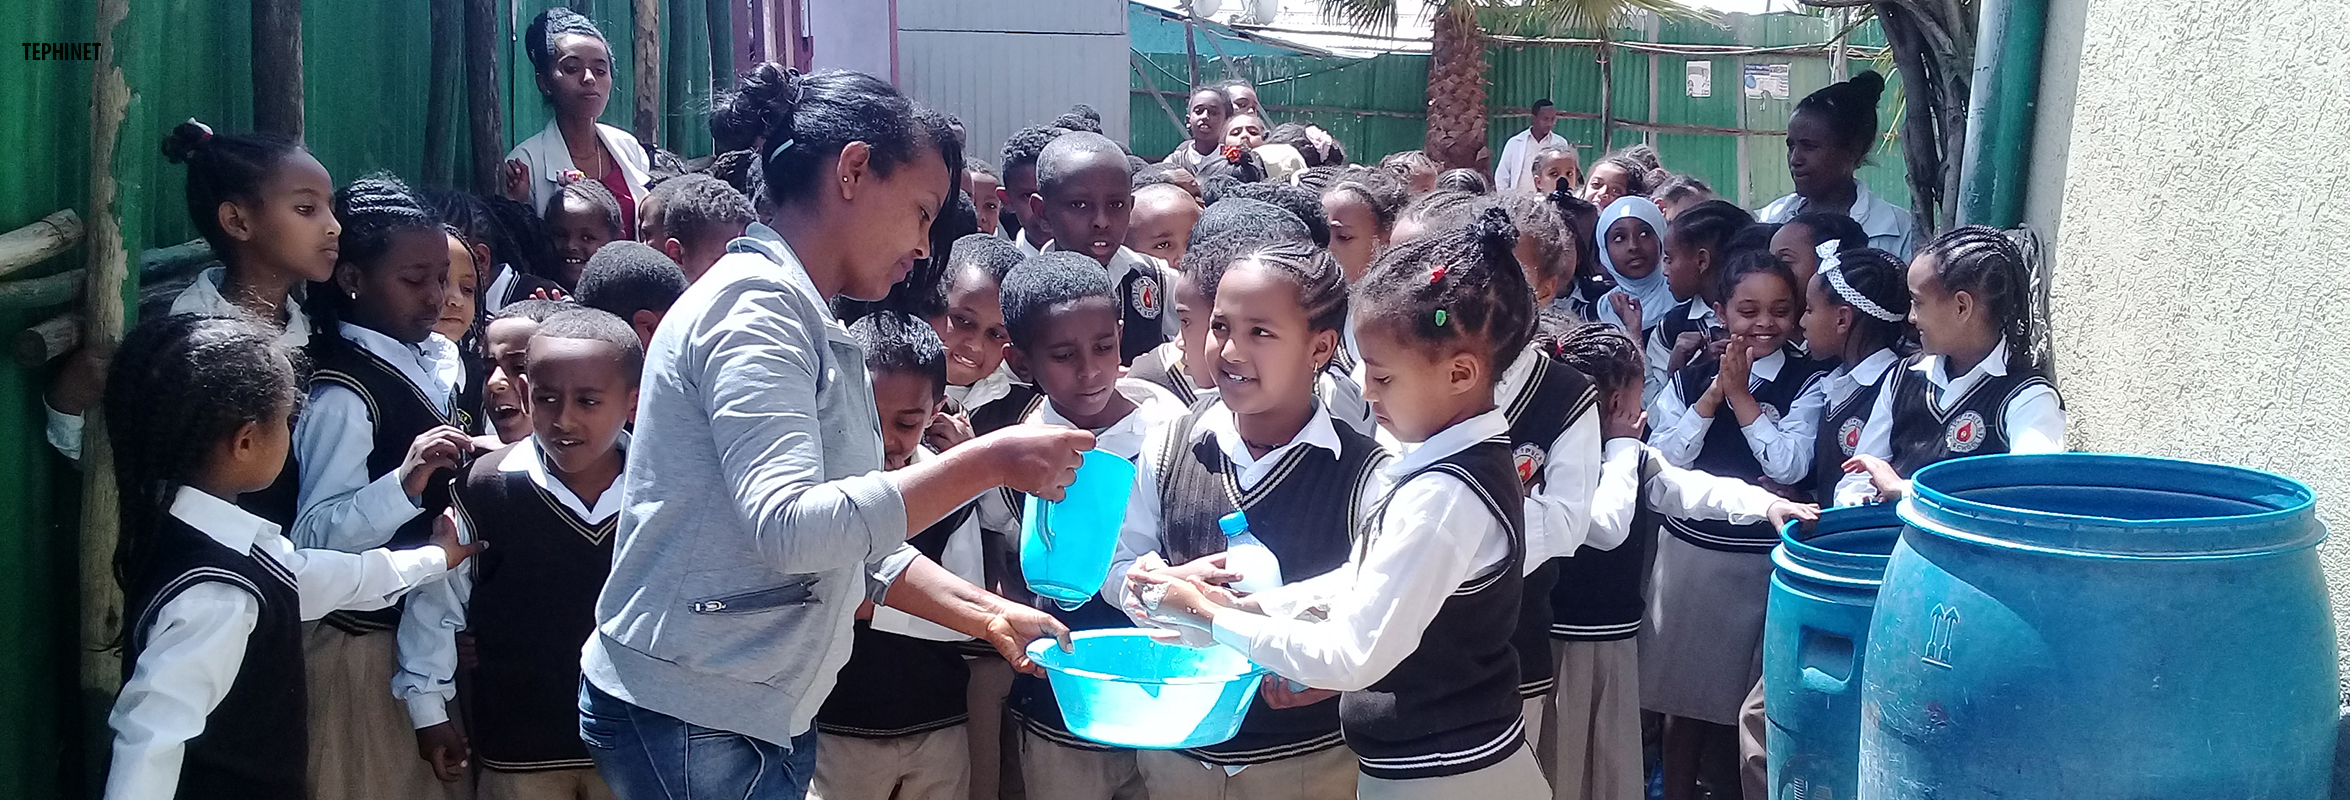 Demonstration of hand washing during outbreak investigation in Addis Ababa, Ethiopia. Photo: TEPHINET